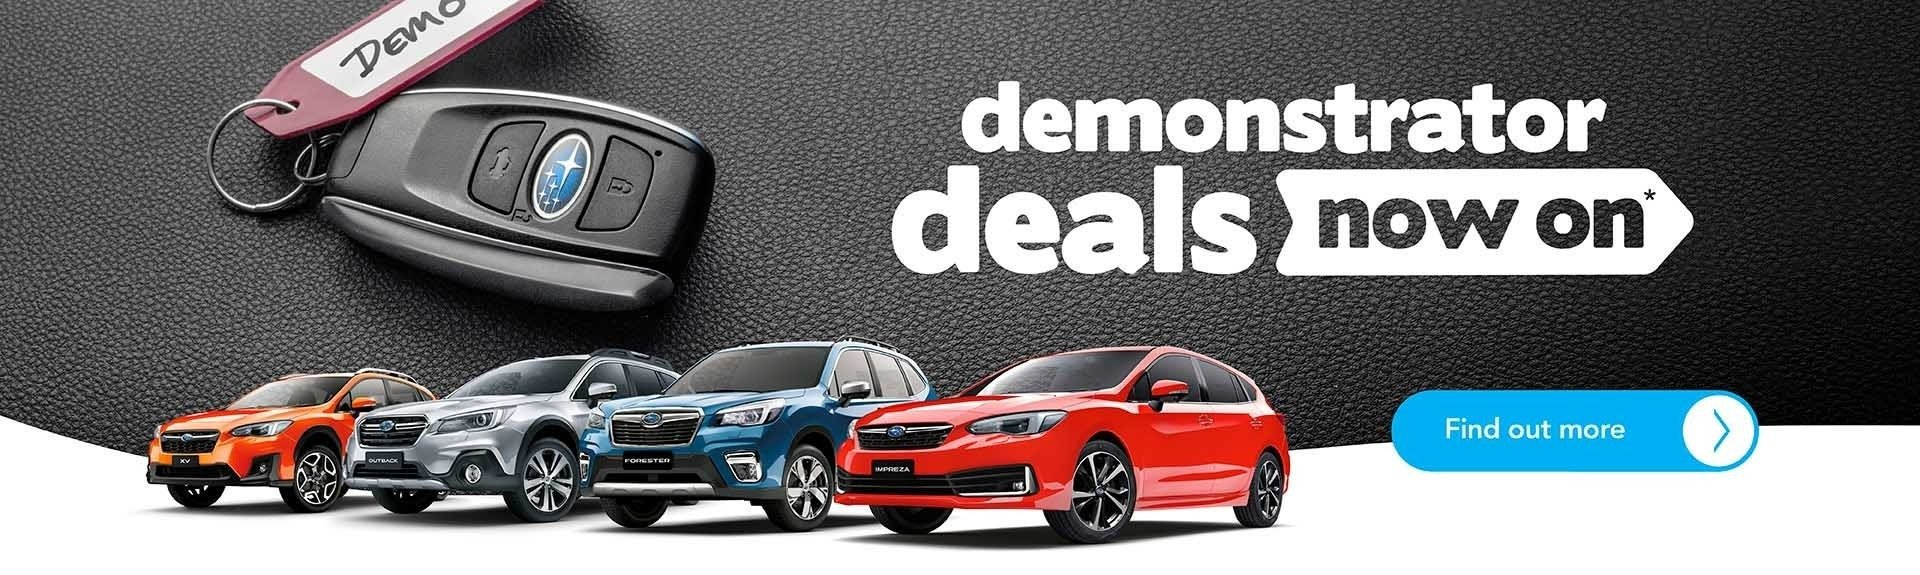 Trivett Subaru Demo Deals On Now